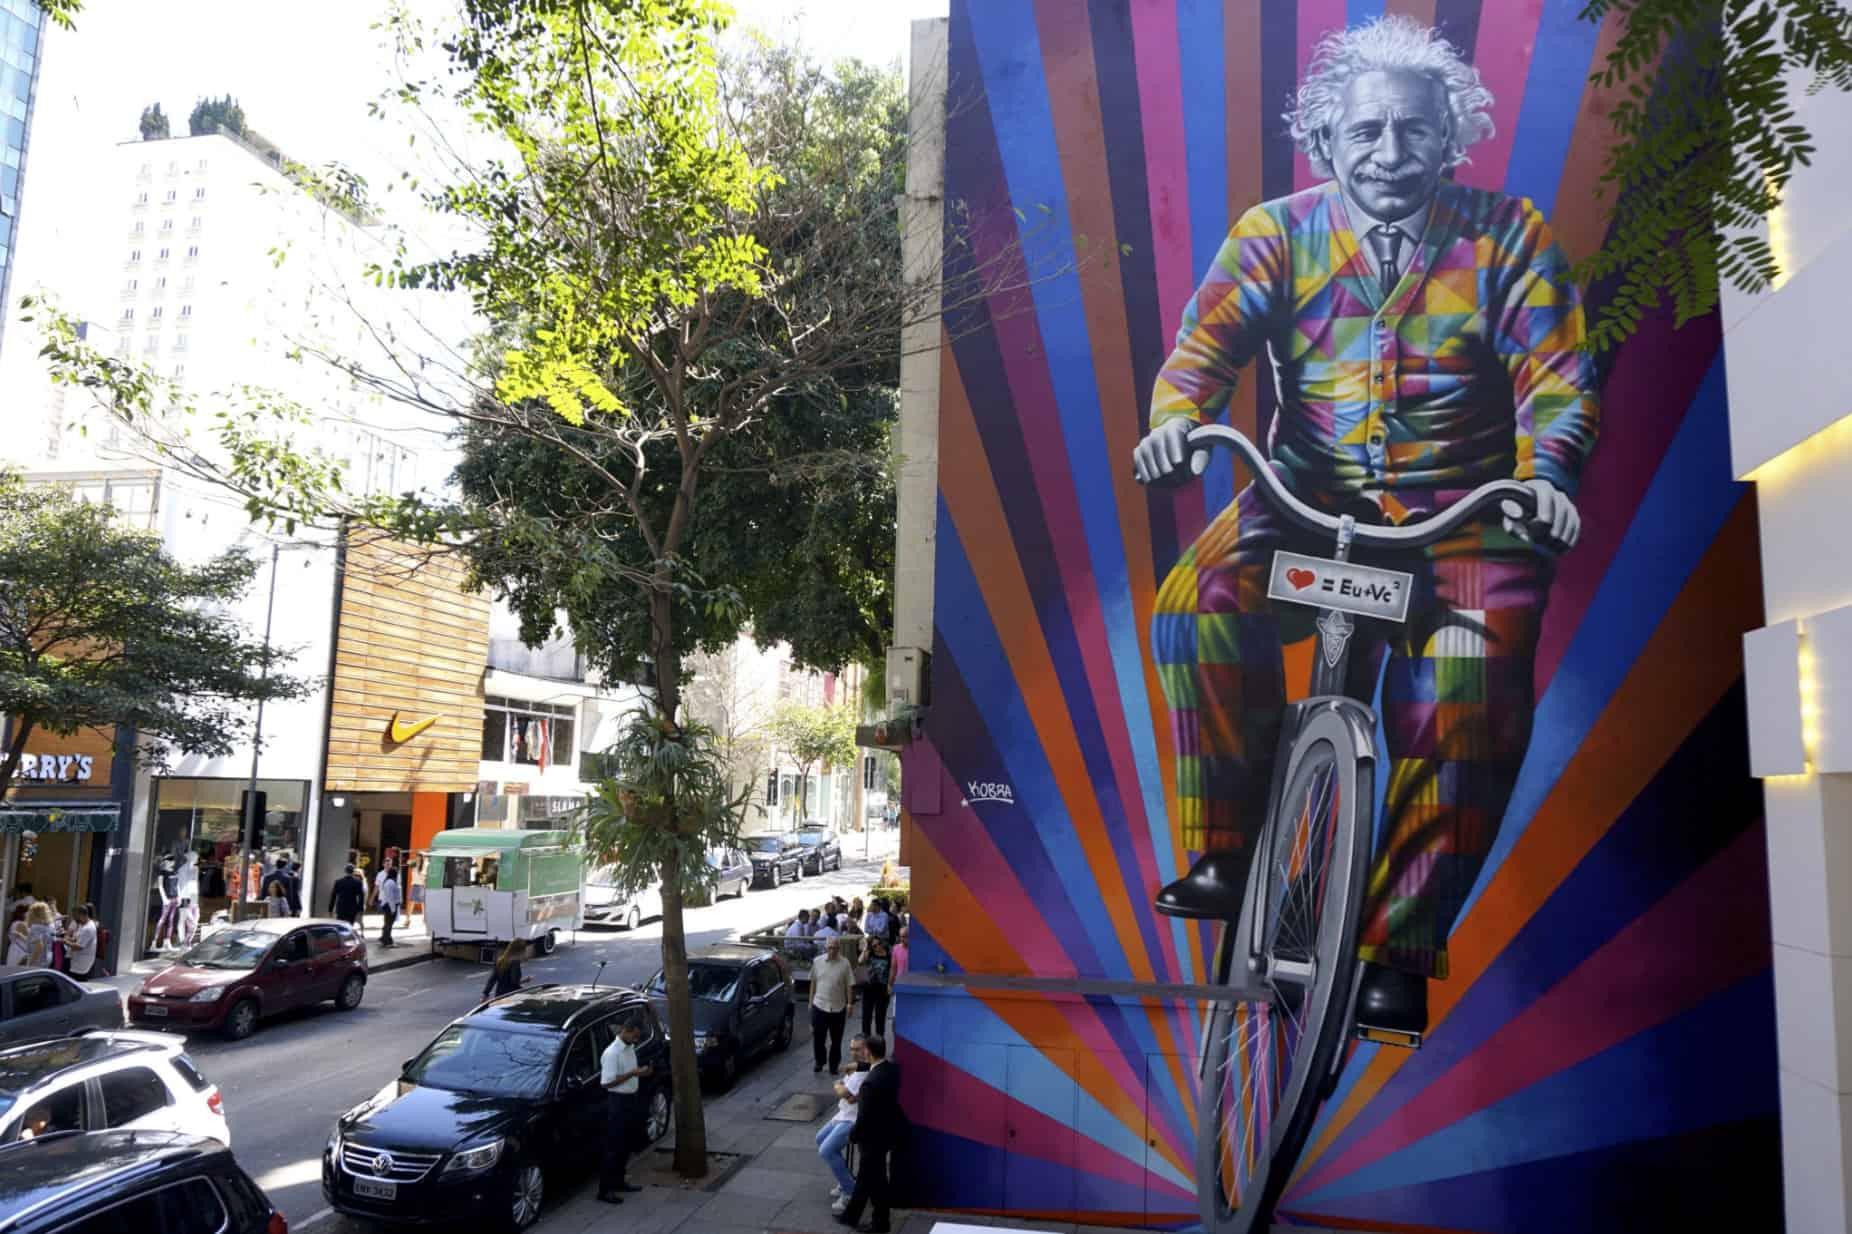 Genial Riding Bike SAO PAULO Brazil - art by Eduardo Kobra